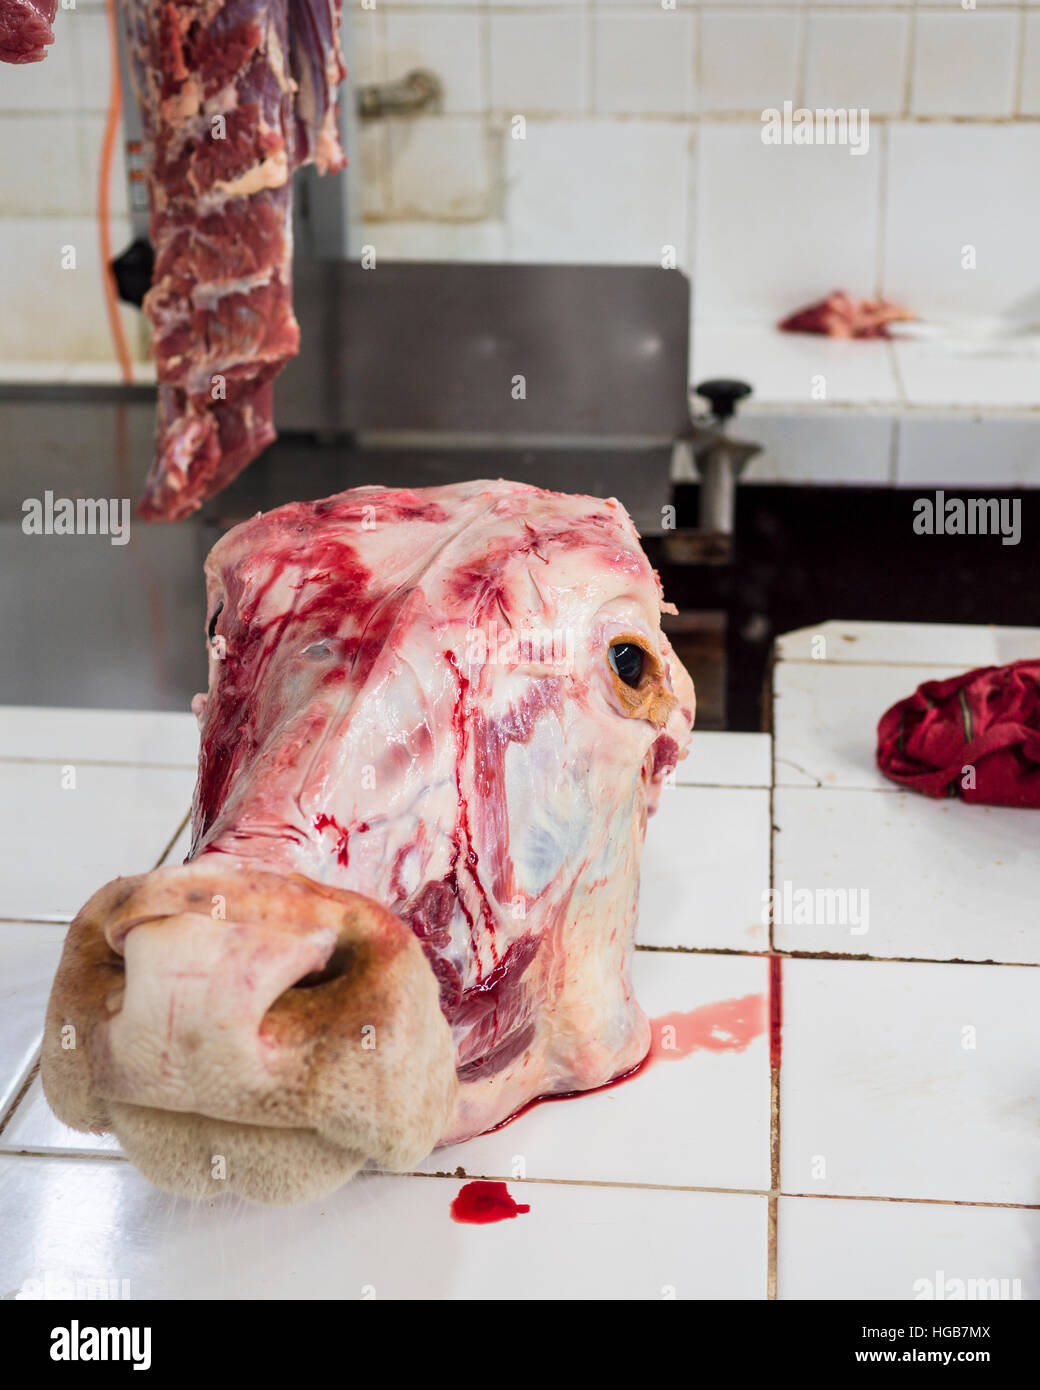 Skinned Cow's Head dripping blood. A butchered severed cow's head on a counter top in a Valladolid meat - Stock Image